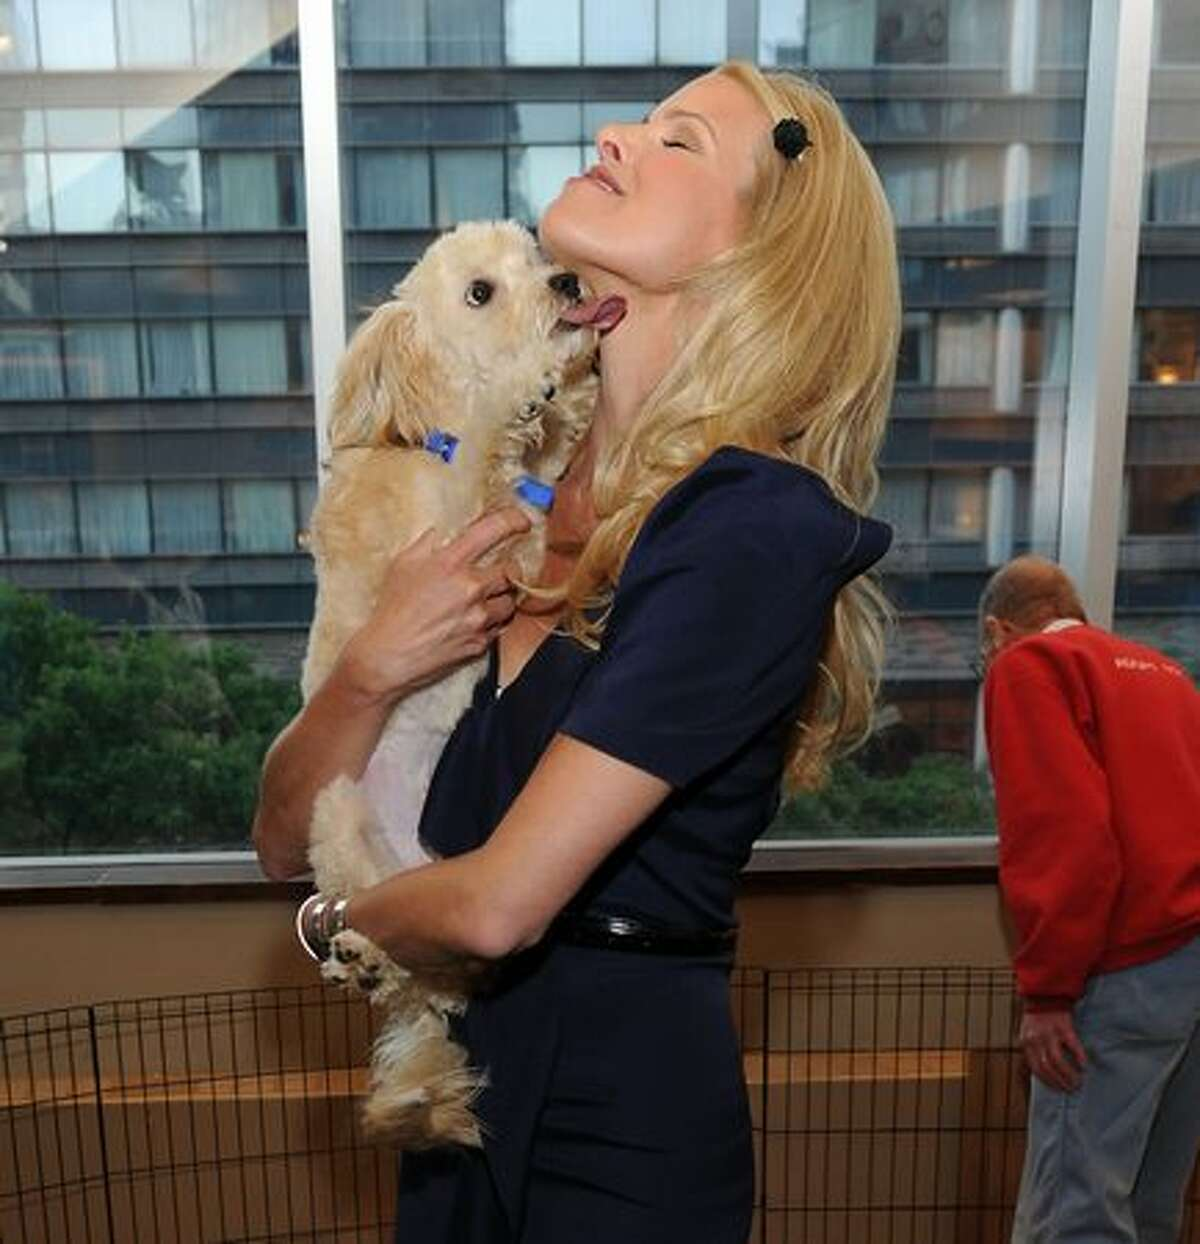 """Beth Ostrosky Stern promotes """"Oh My Dog: How to Choose, Train, Groom, Nurture, Feed, and Care for Your New Best Friend"""" at Barnes & Noble, Lincoln Triangle in New York City."""